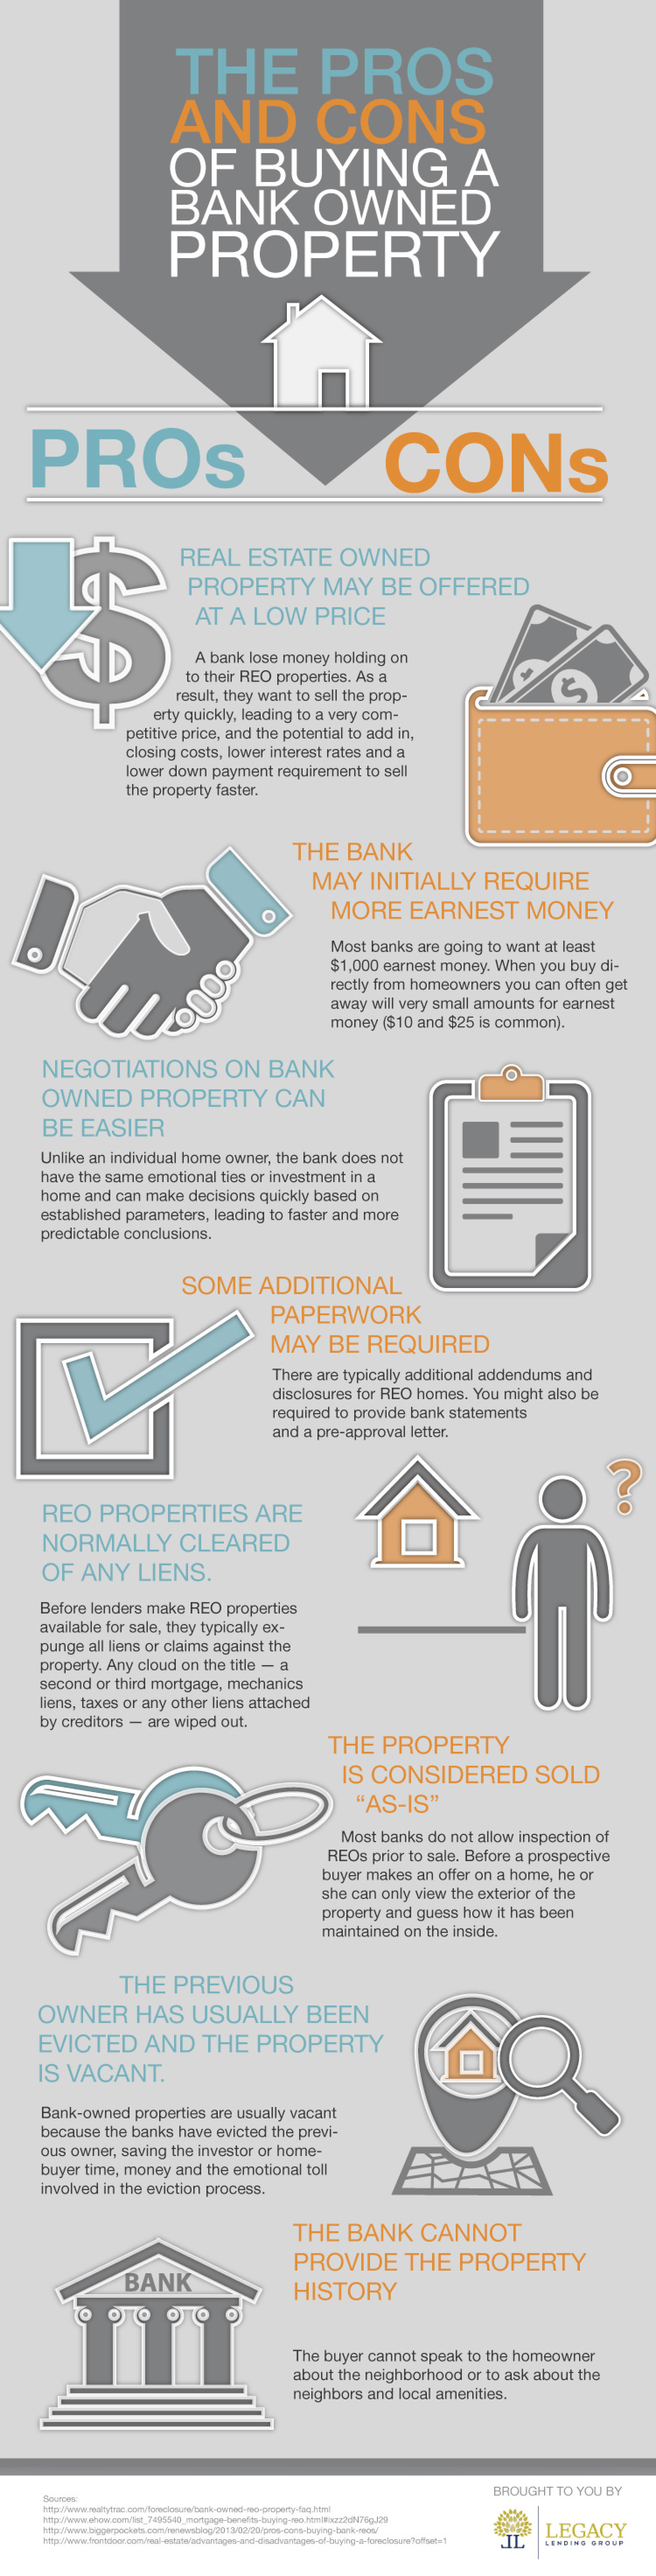 The Pros and Cons of Buying a Bank Owned Property Infographic